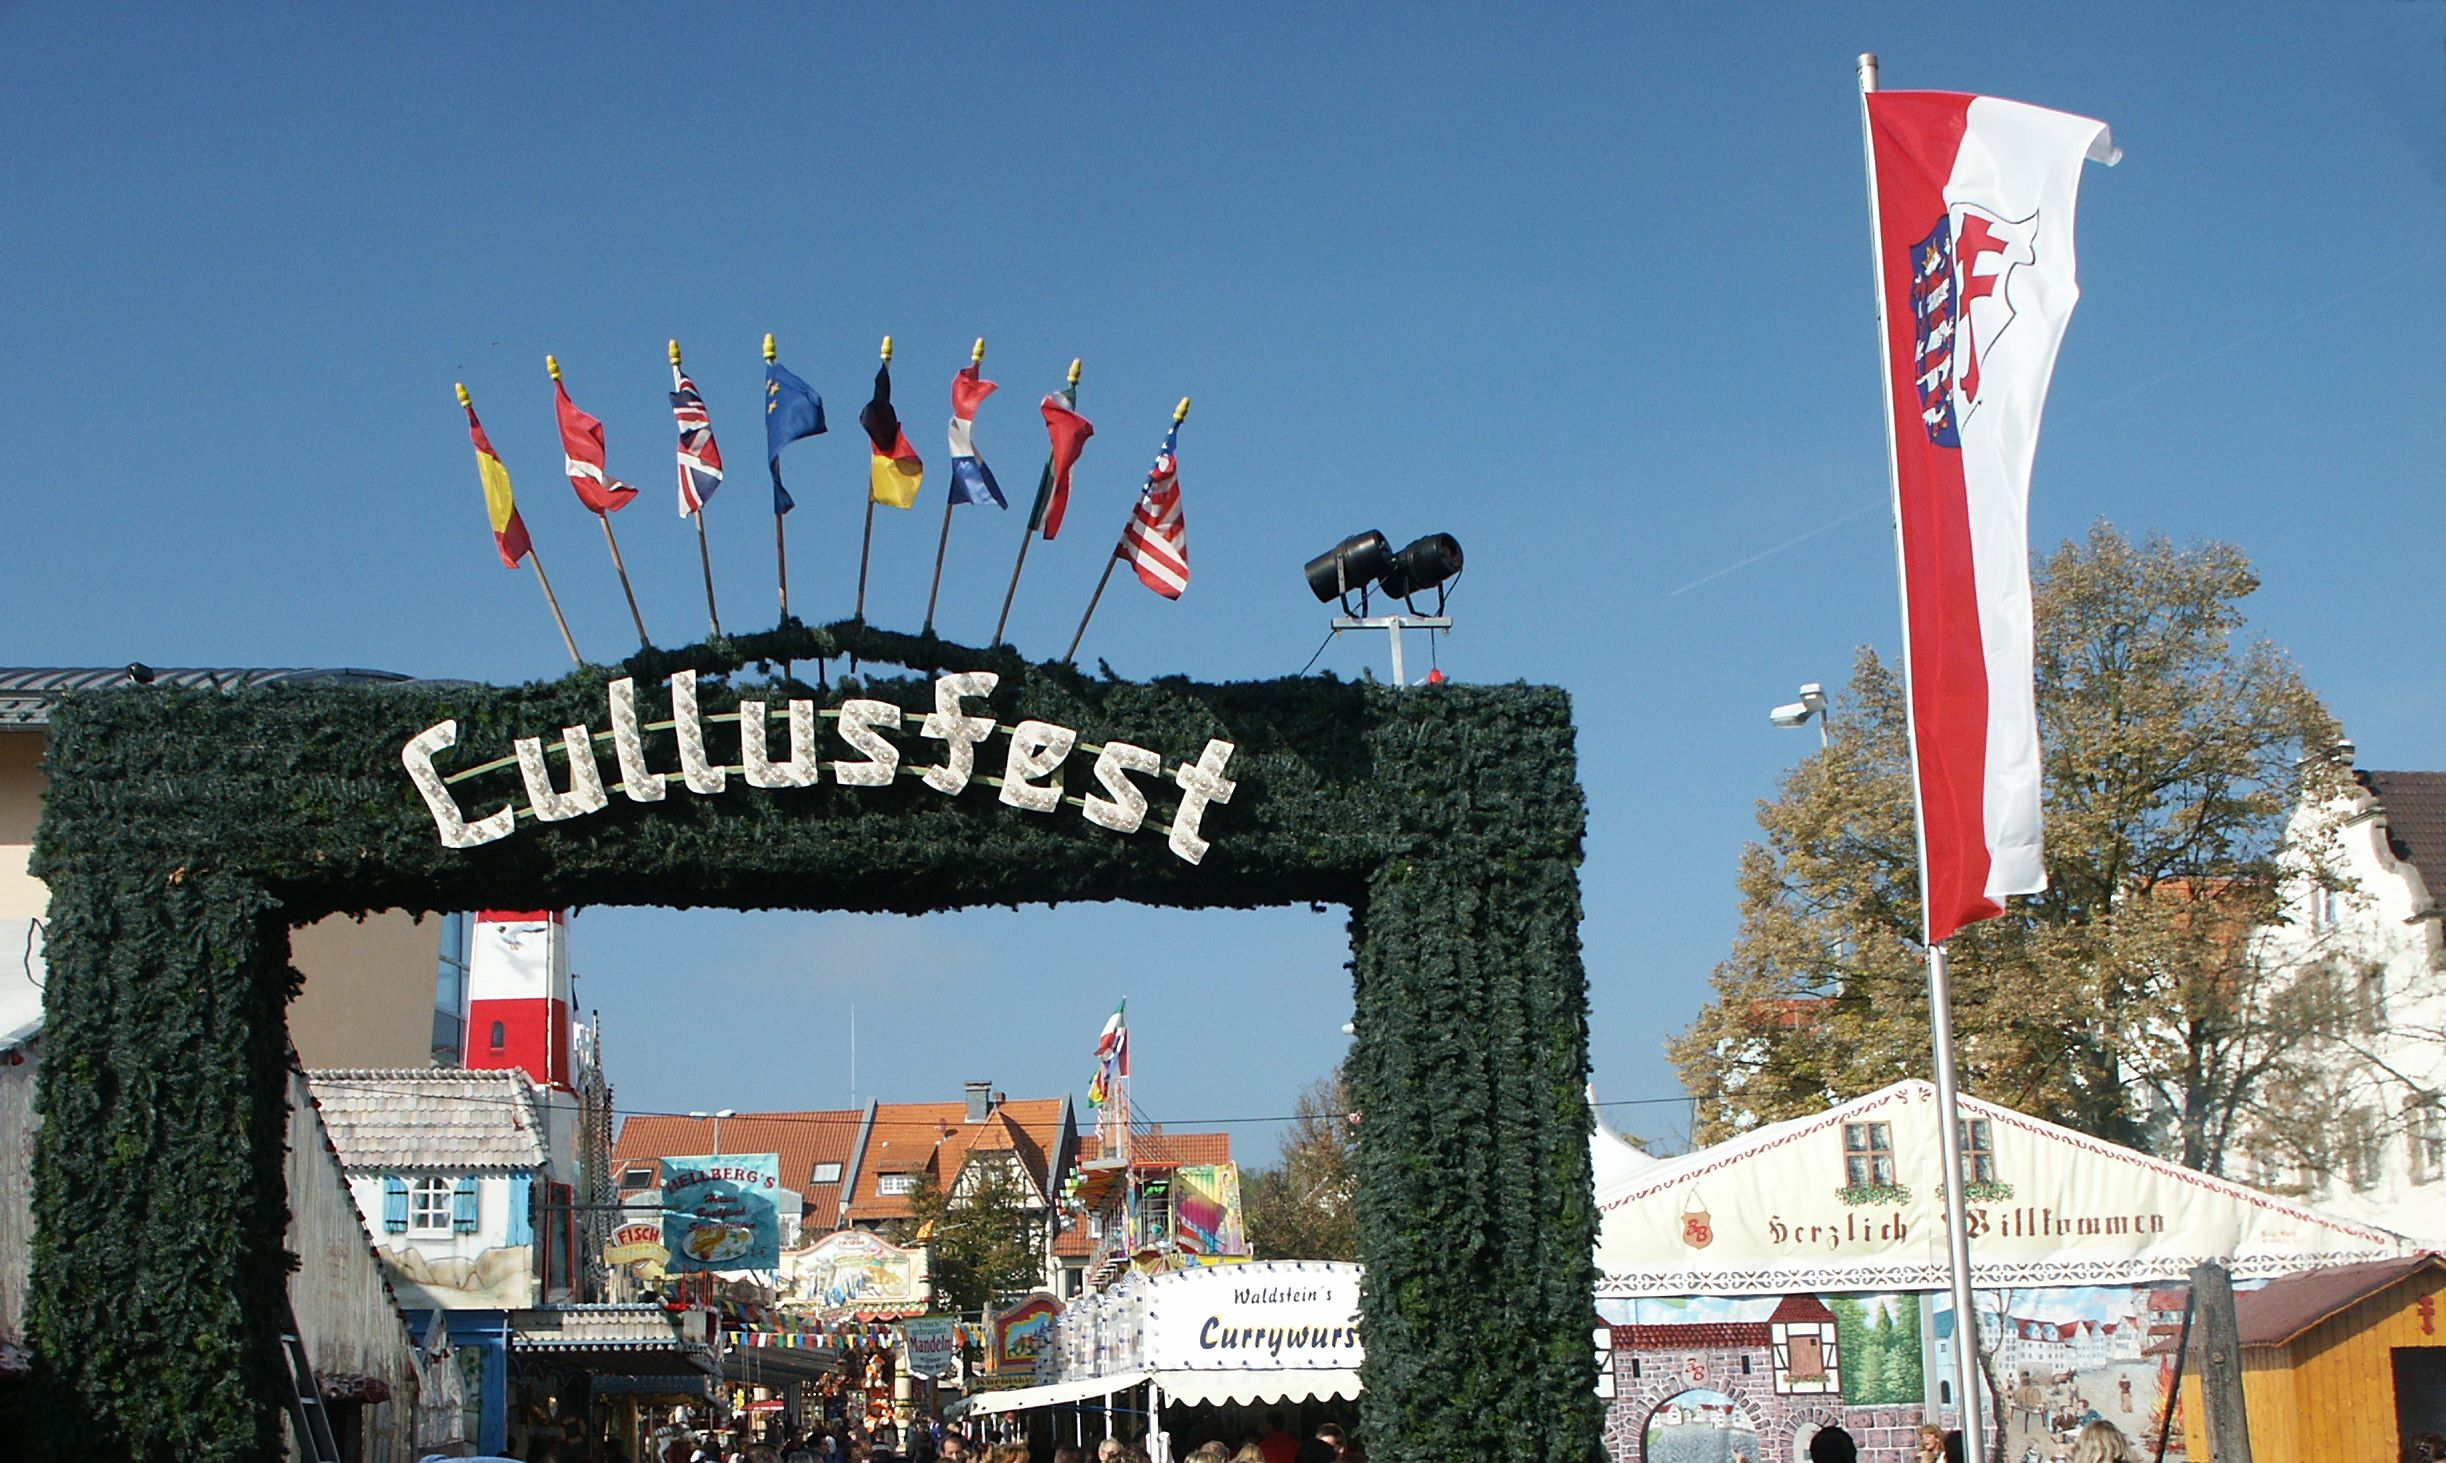 http://upload.wikimedia.org/wikipedia/commons/2/20/Hersfelder_lullusfest_entrance.jpg